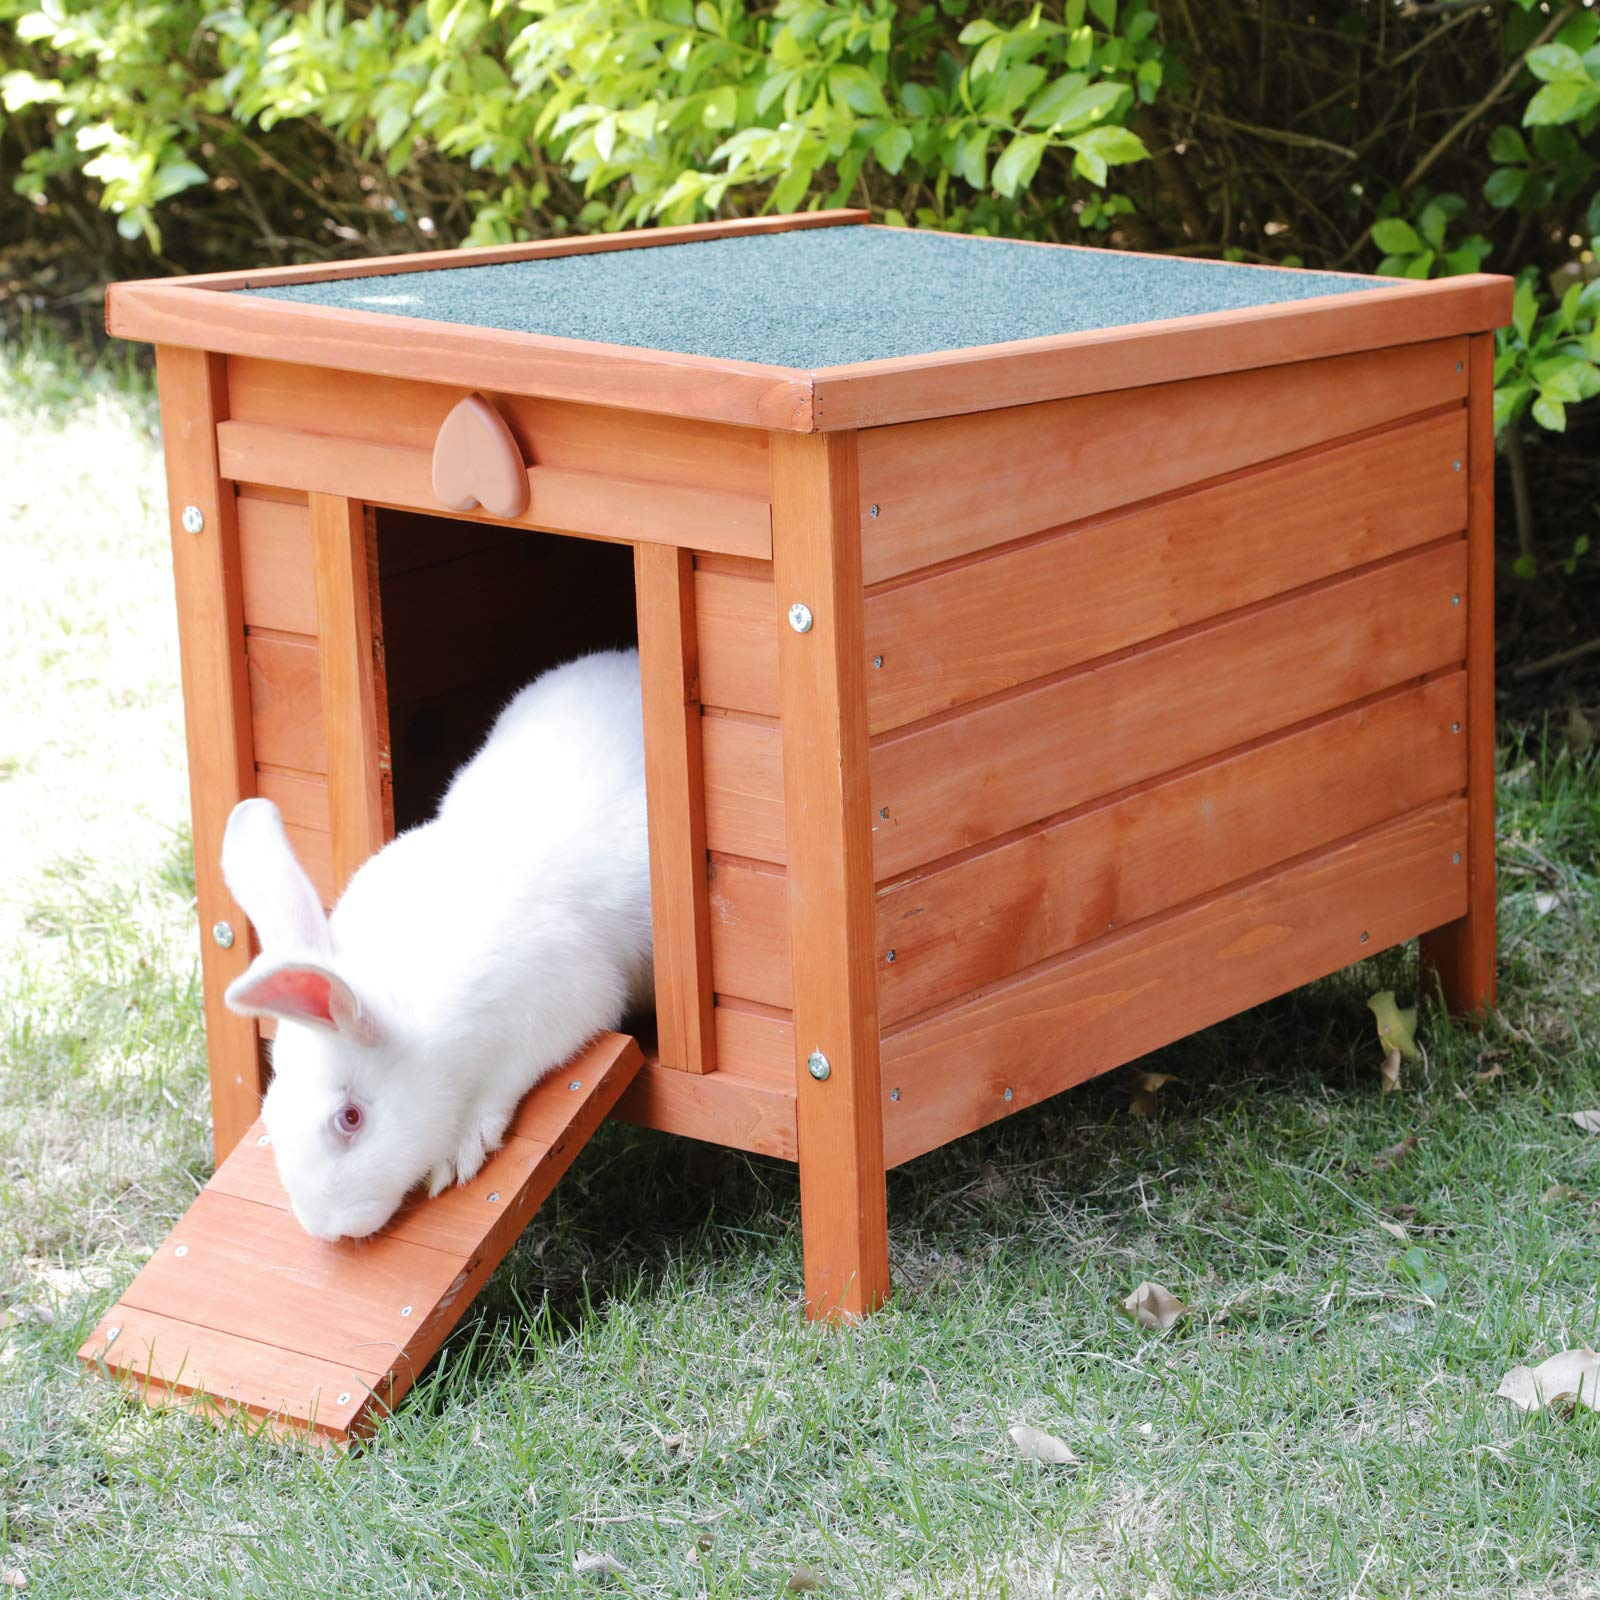 ROCKEVER Feral Cat Condo for Outdoor Cats Insulated, Wooden Bunny House Outdoor Autumn Blonde by ROCKEVER